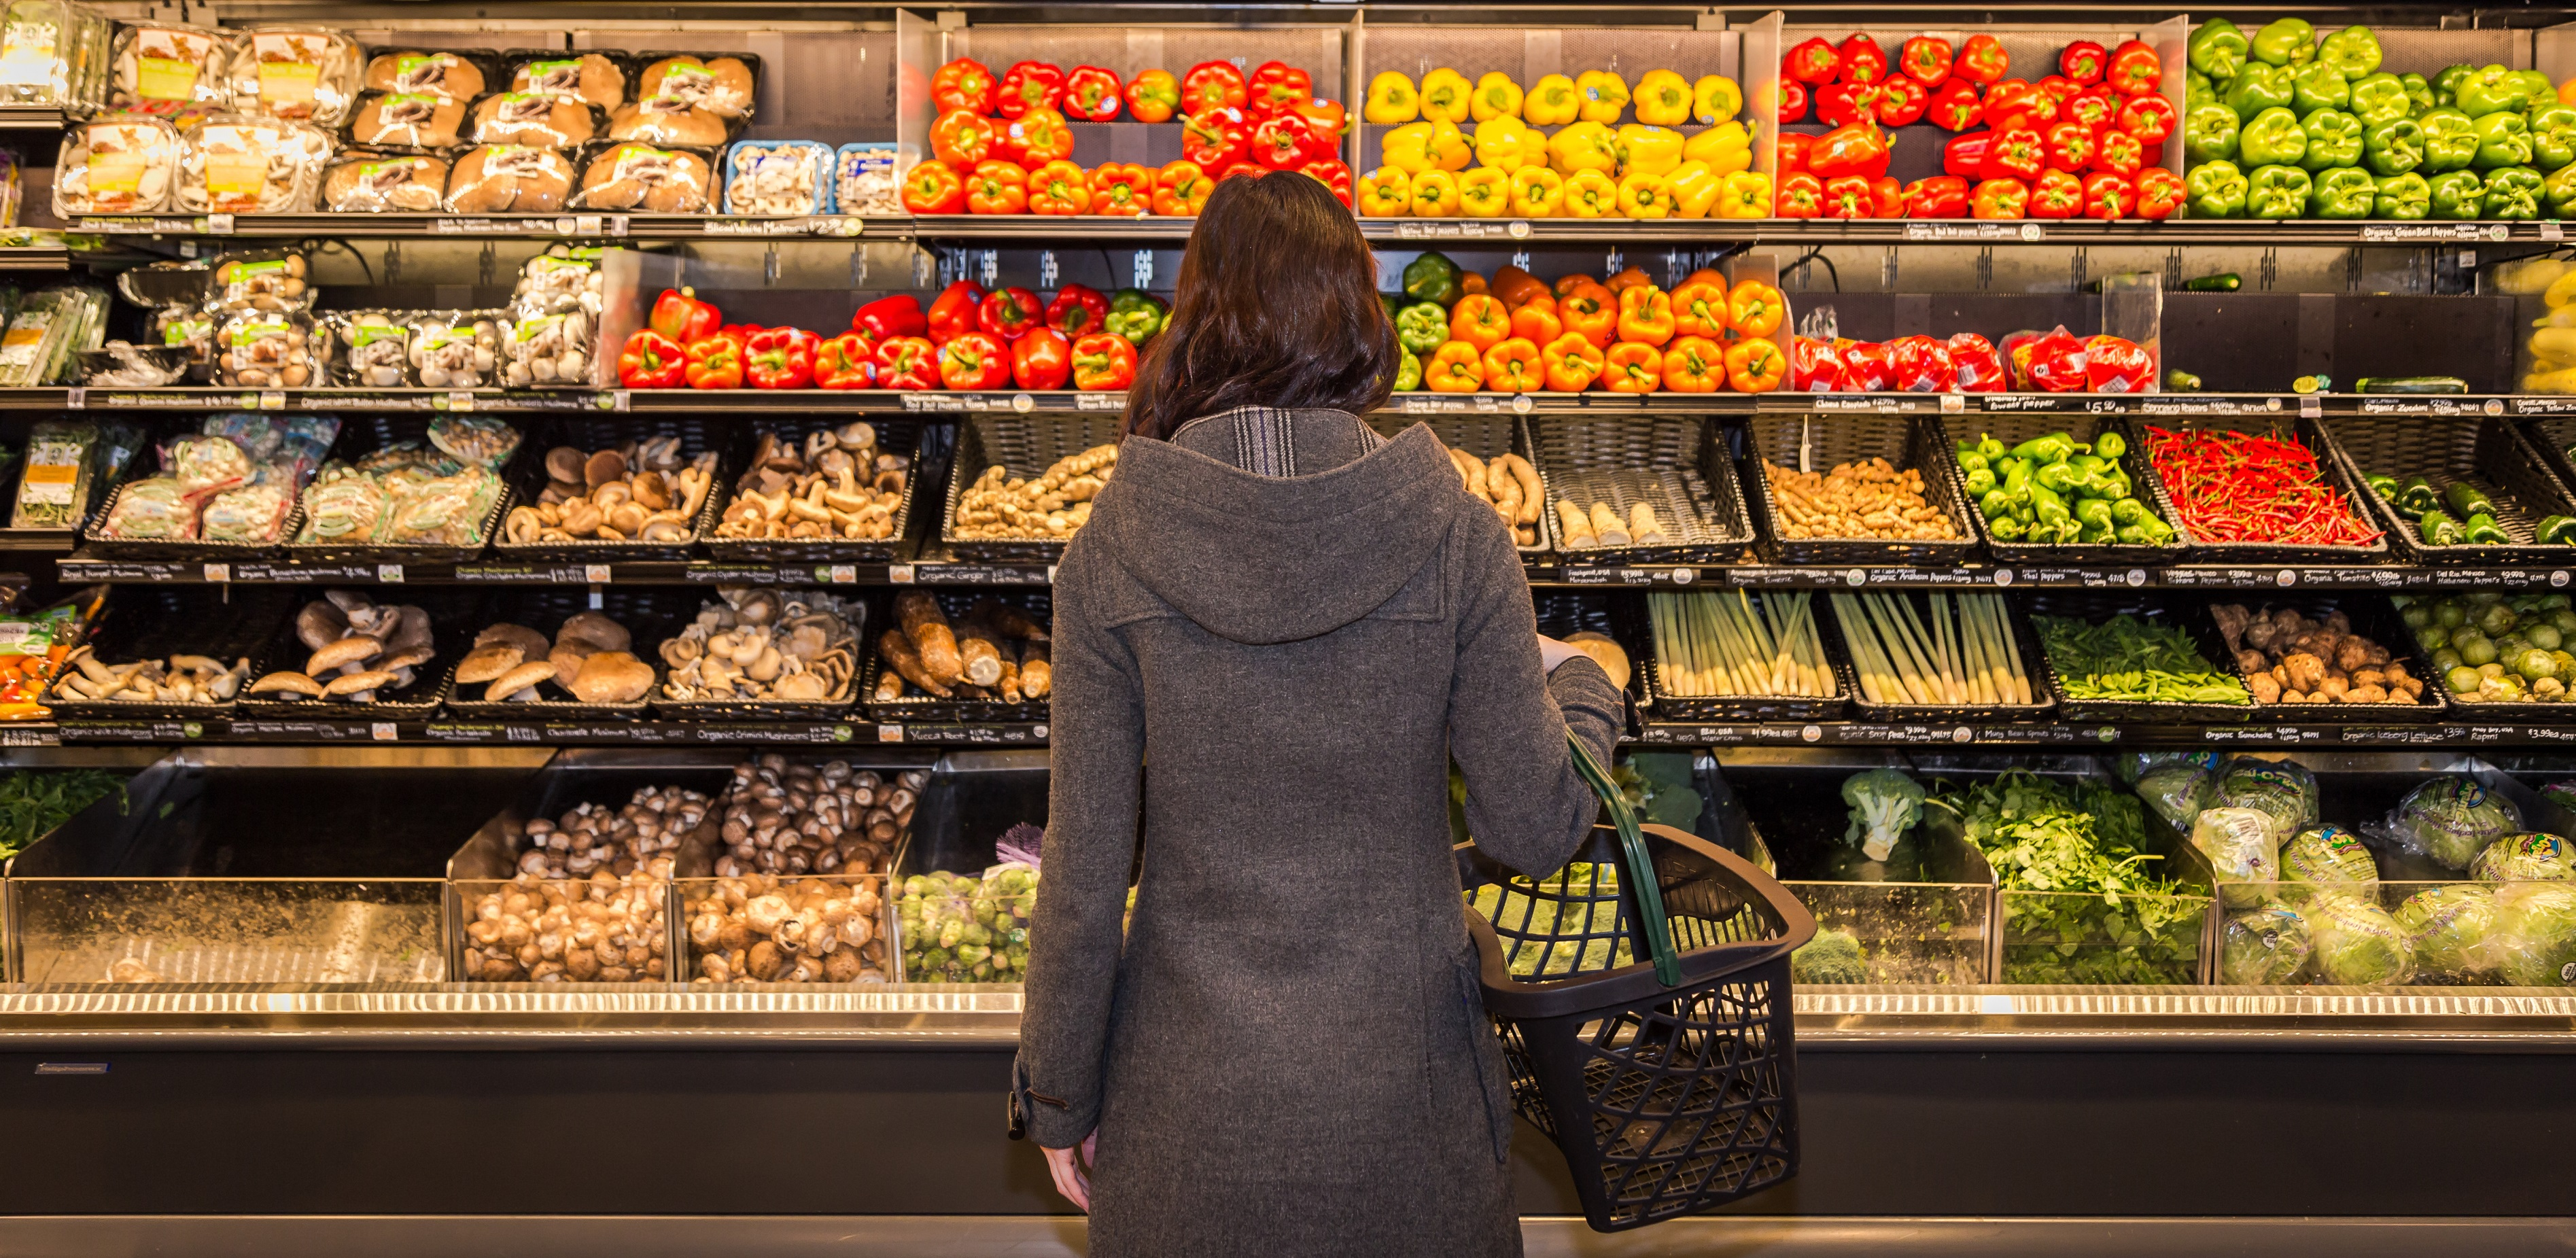 All you need to know about Amazon Go